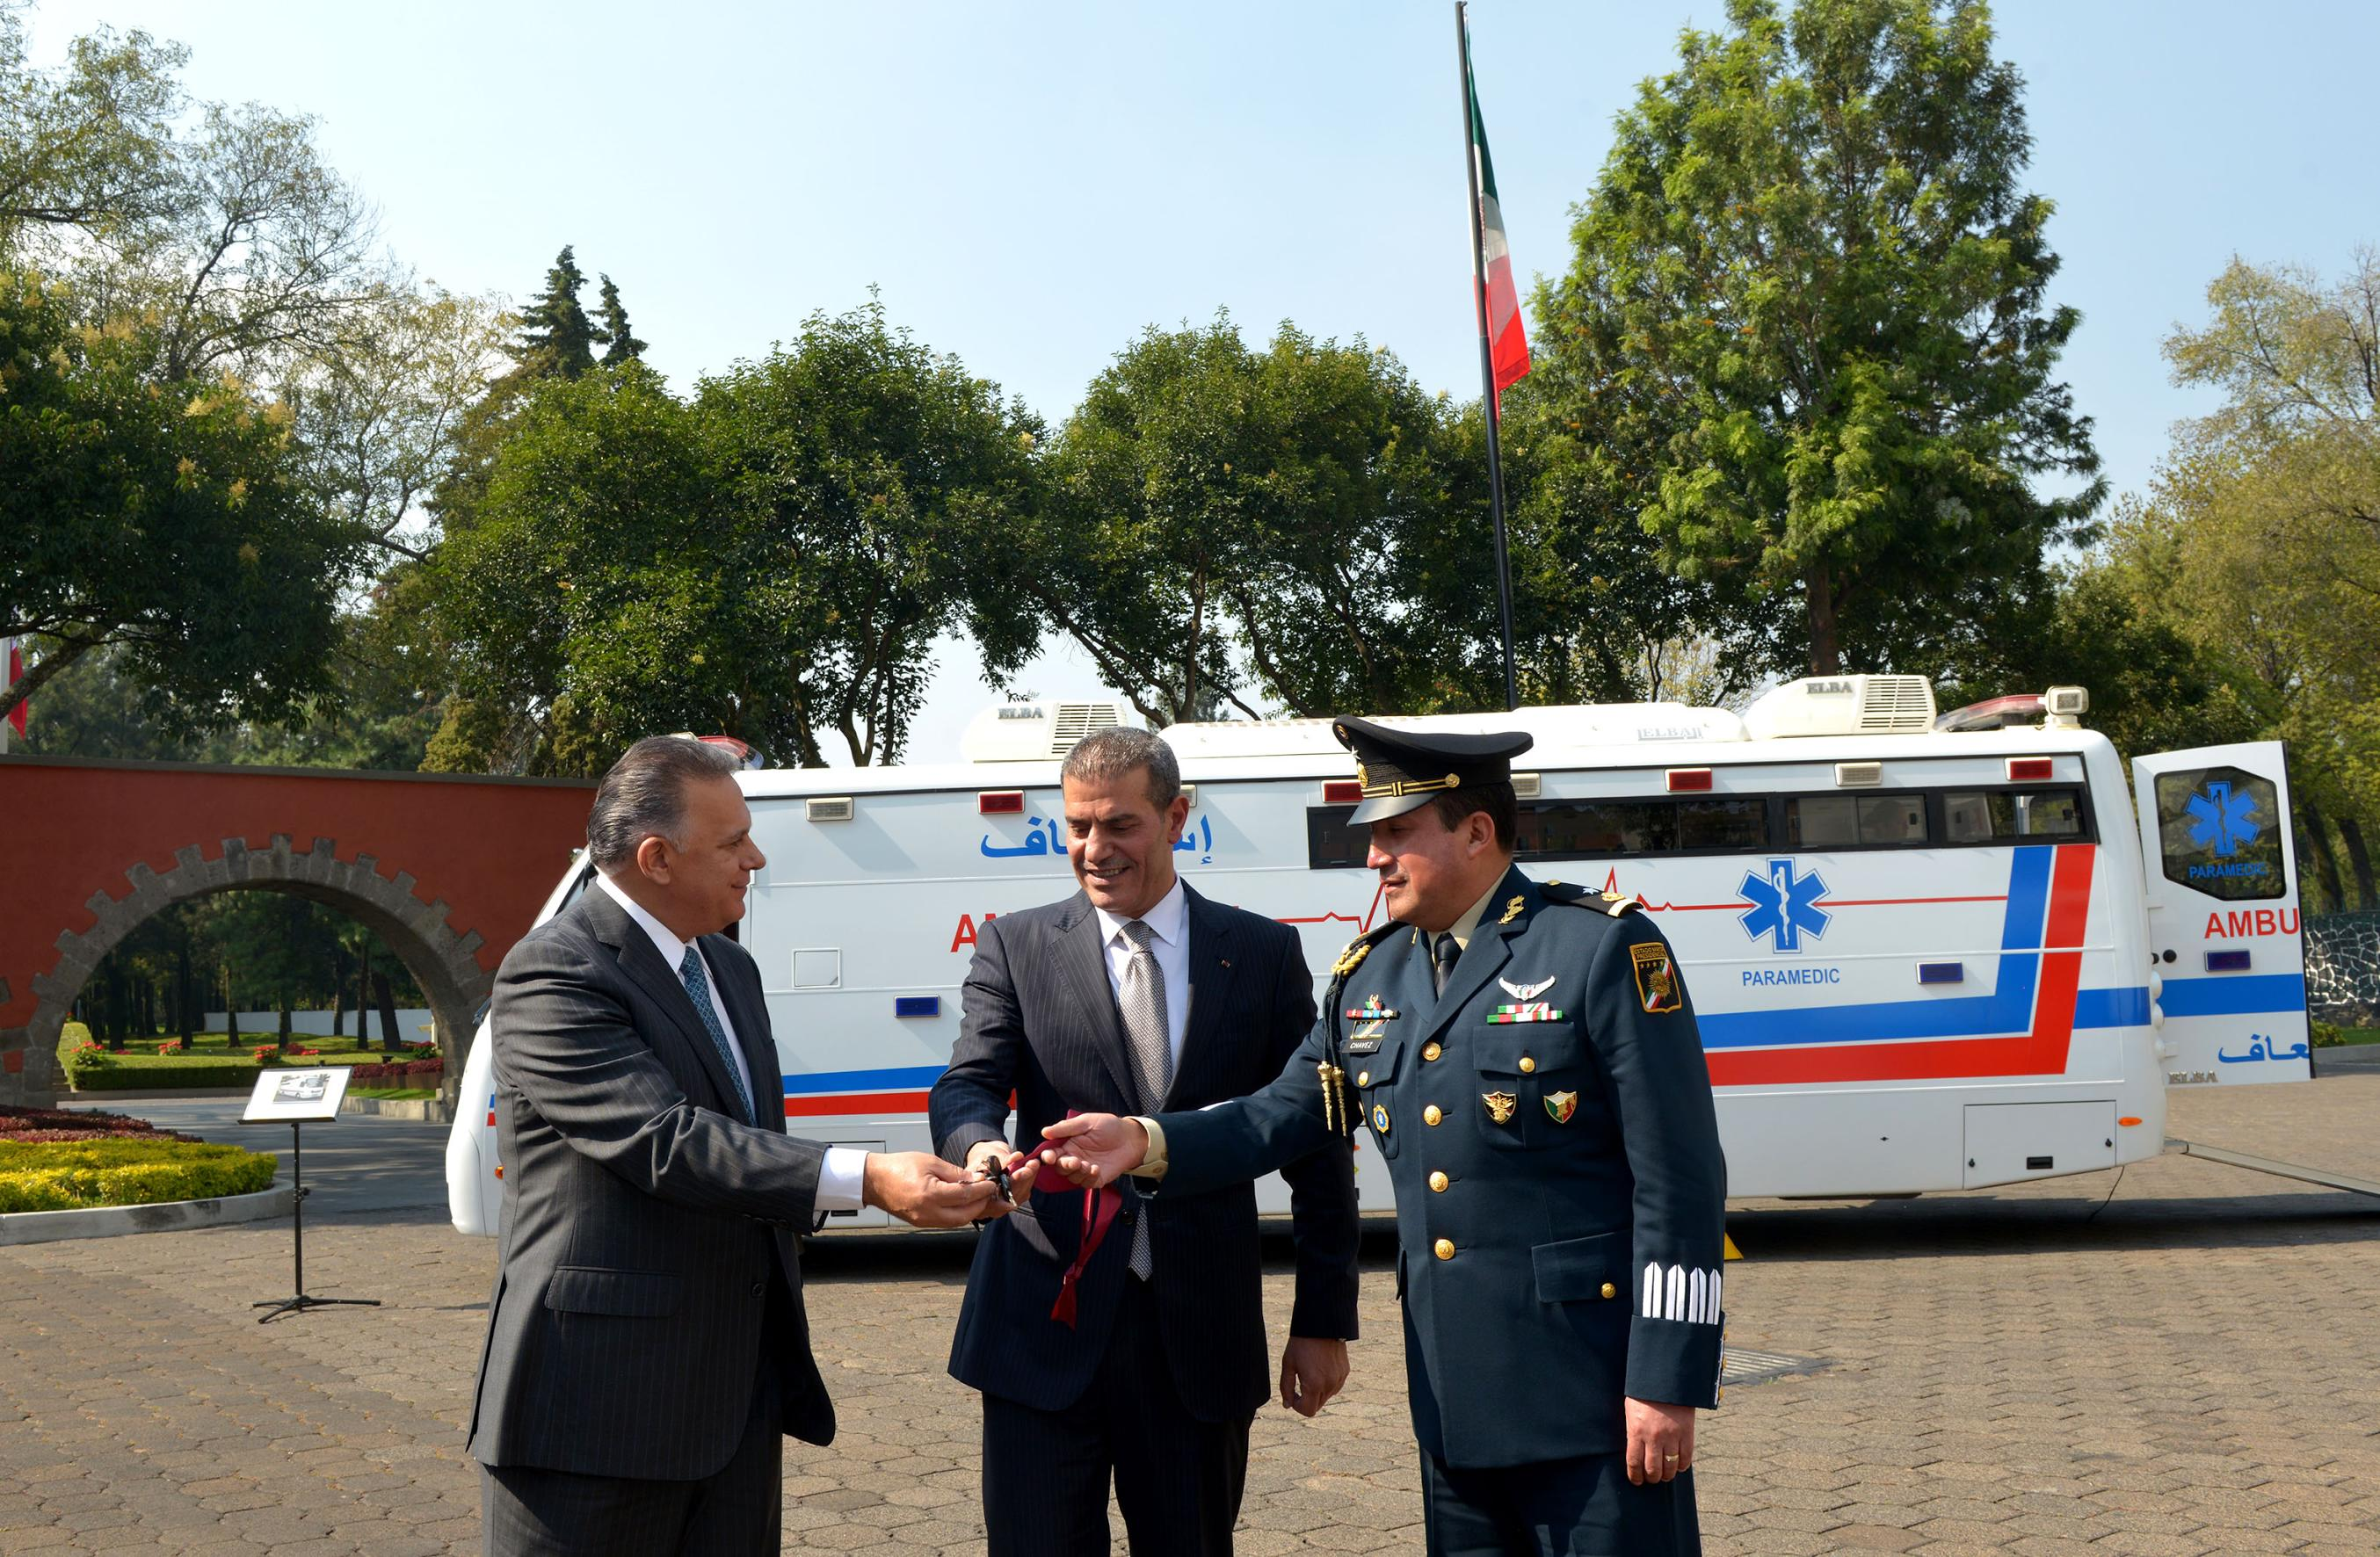 Jordanian ambassador to Mexico Ibrahim Obeidat said that the donation of a highly specialized ambulance to the Presidential General Staff reflects King Abdullah II's interest in Mexico.